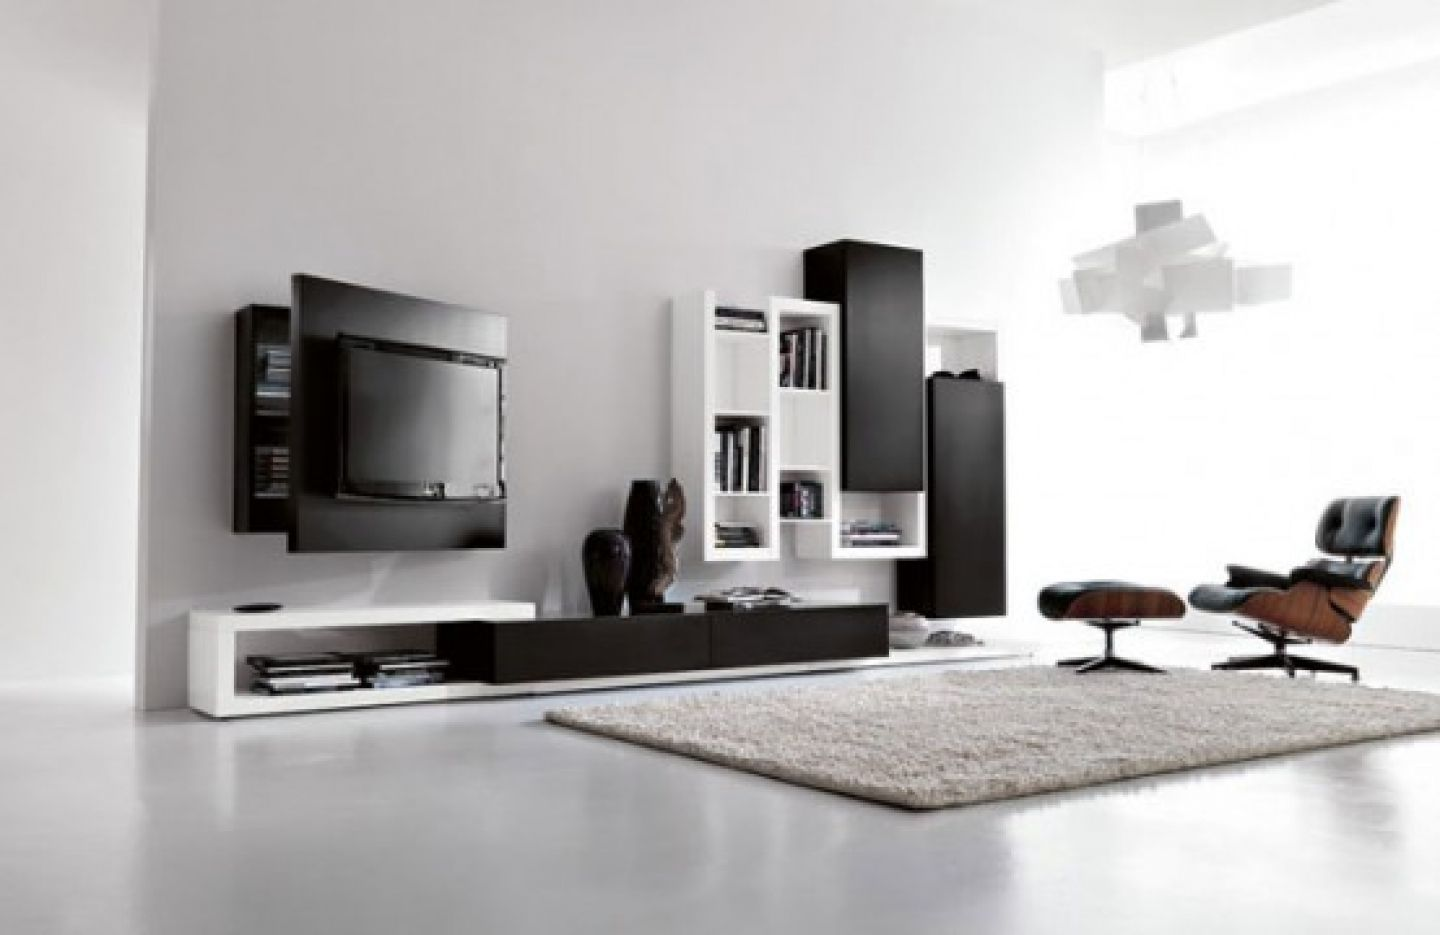 How High To Mount Tv On Wall In Bedroom Living Room Luxurious White Design Black Wall Units